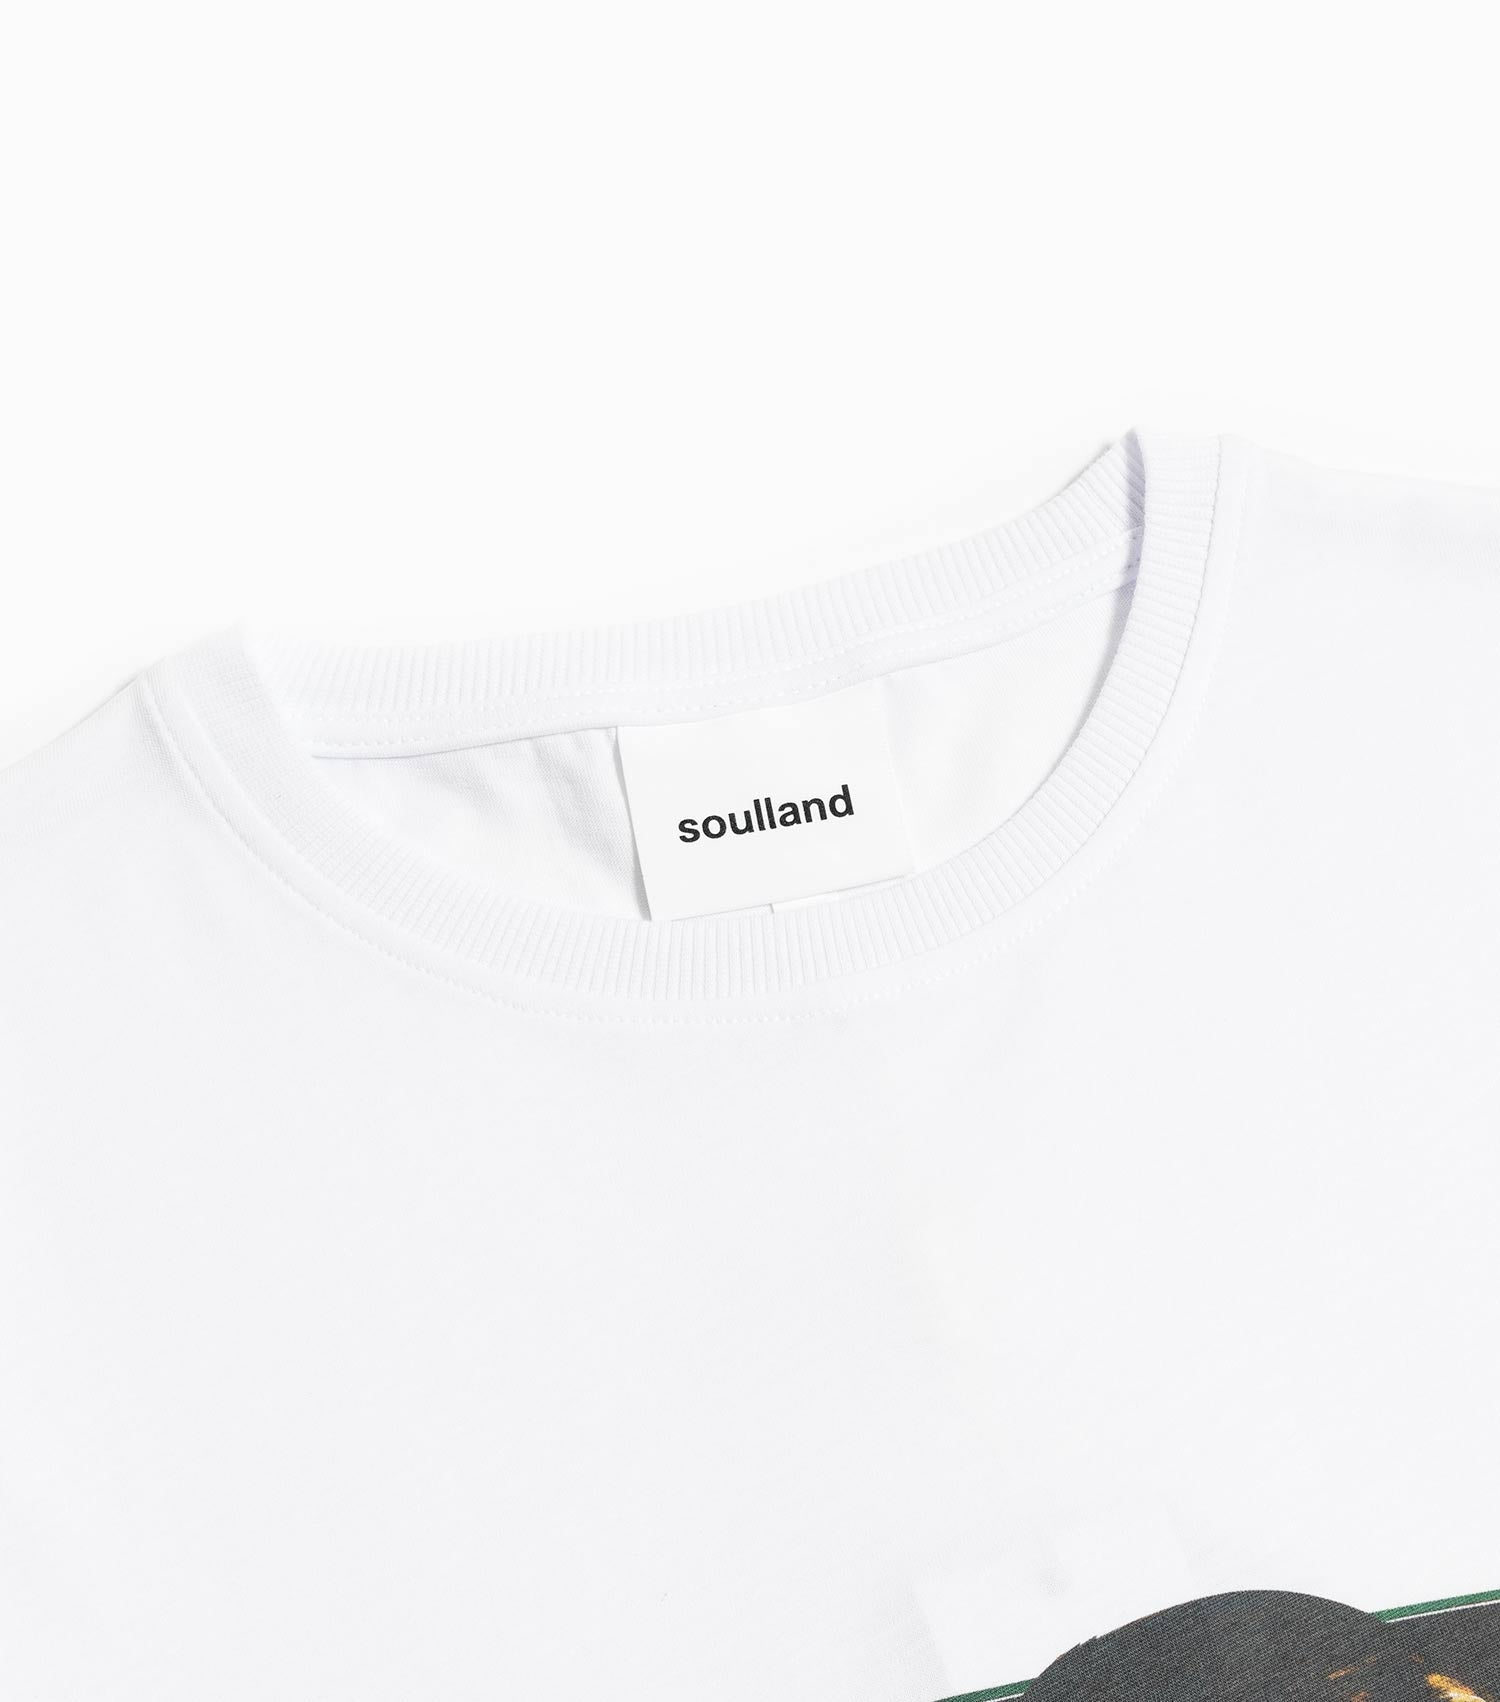 Soulland Otto T-Shirt - White T-Shirt - CARTOCON